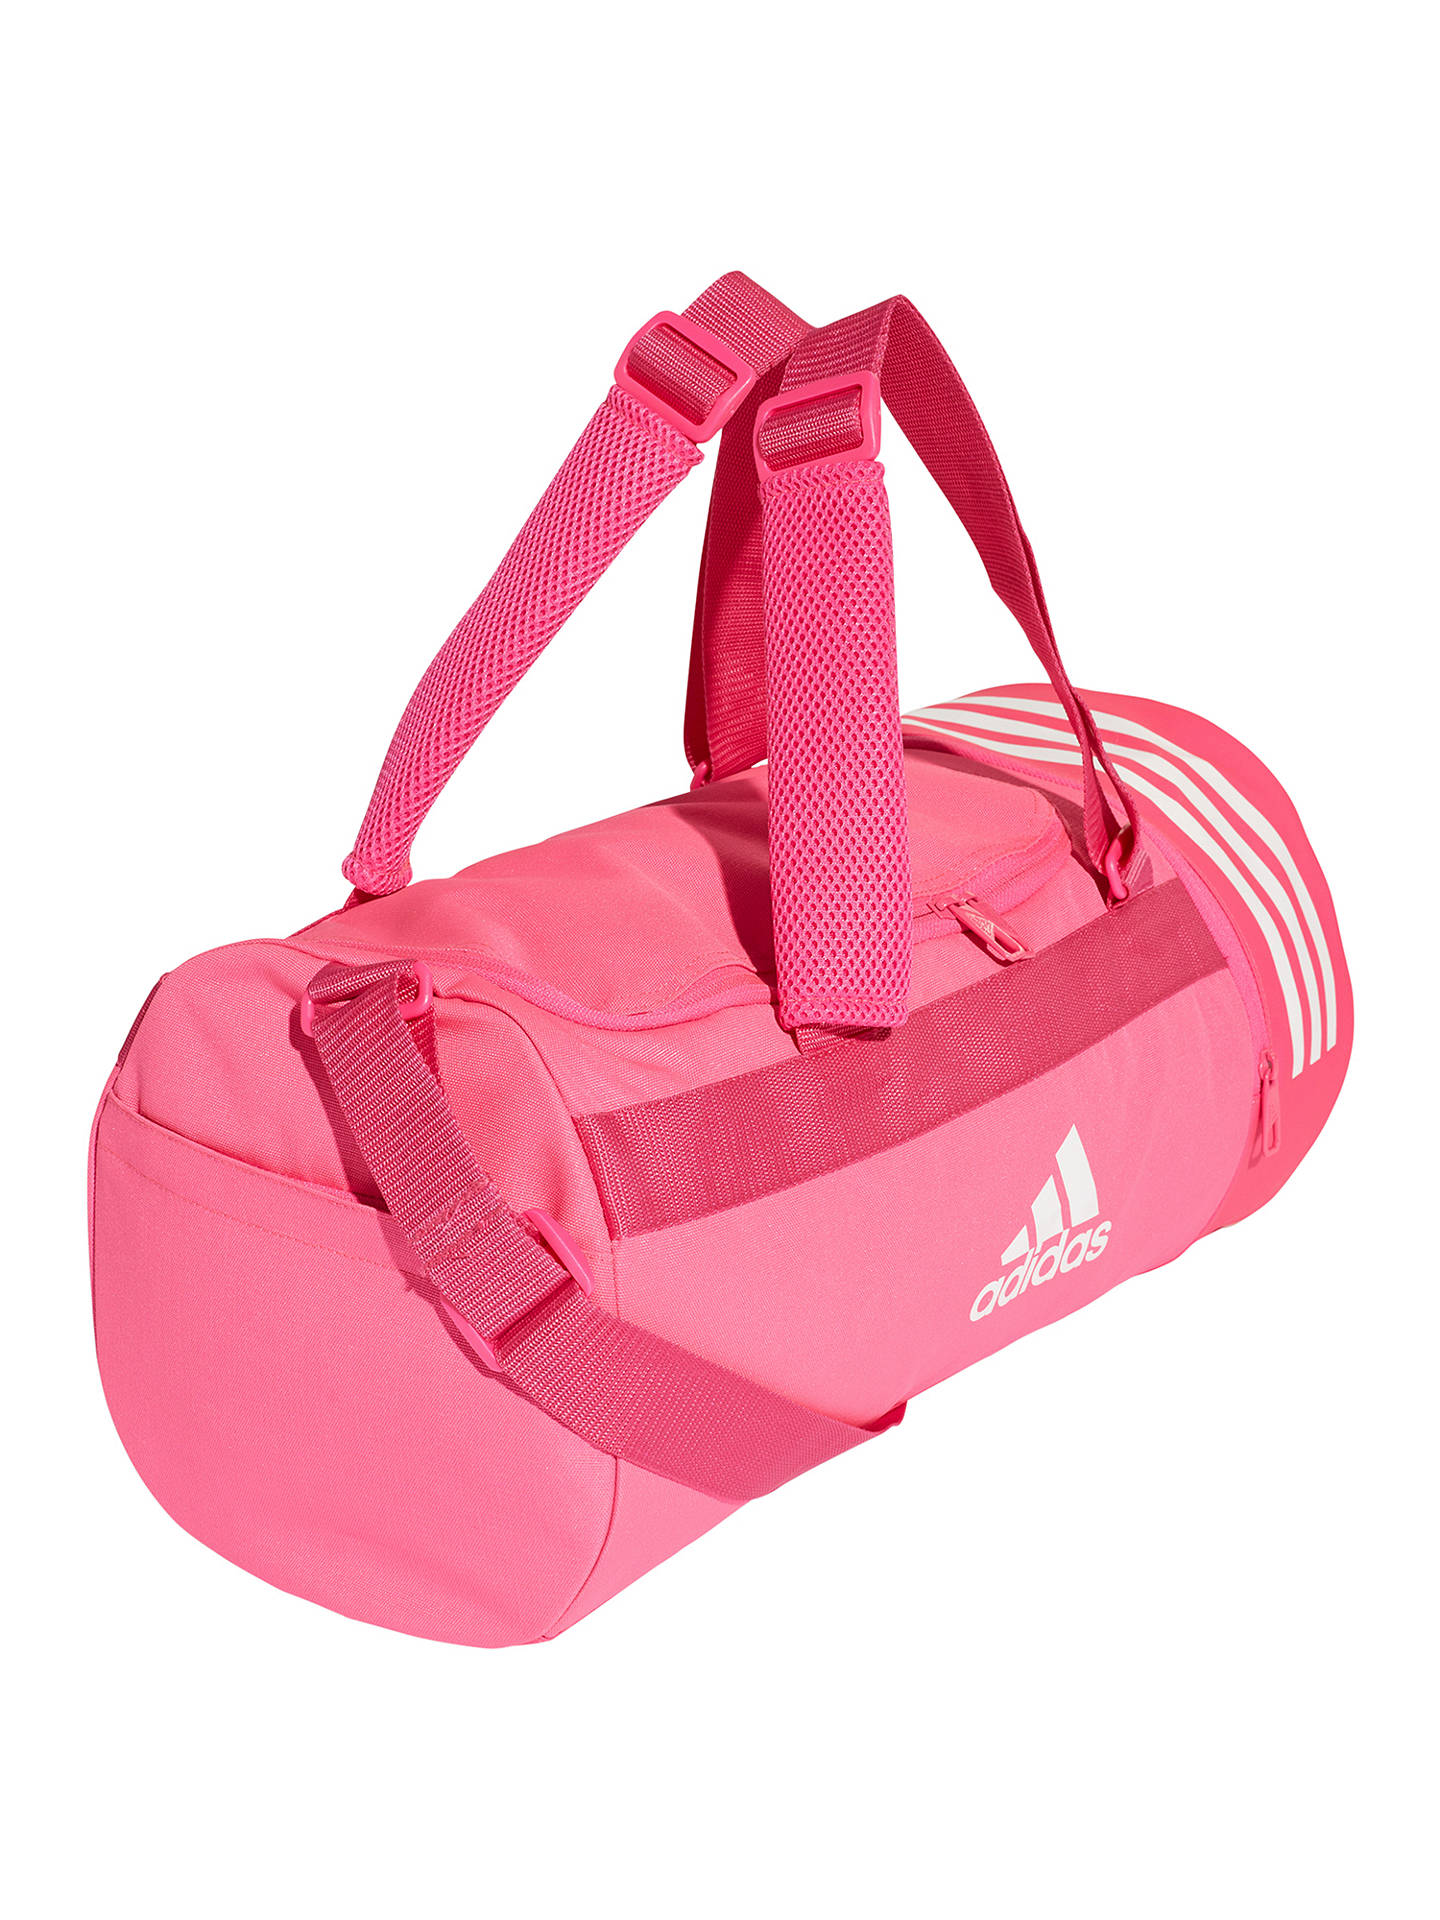 Buyadidas Duffle Bag, Shock Pink Online at johnlewis.com